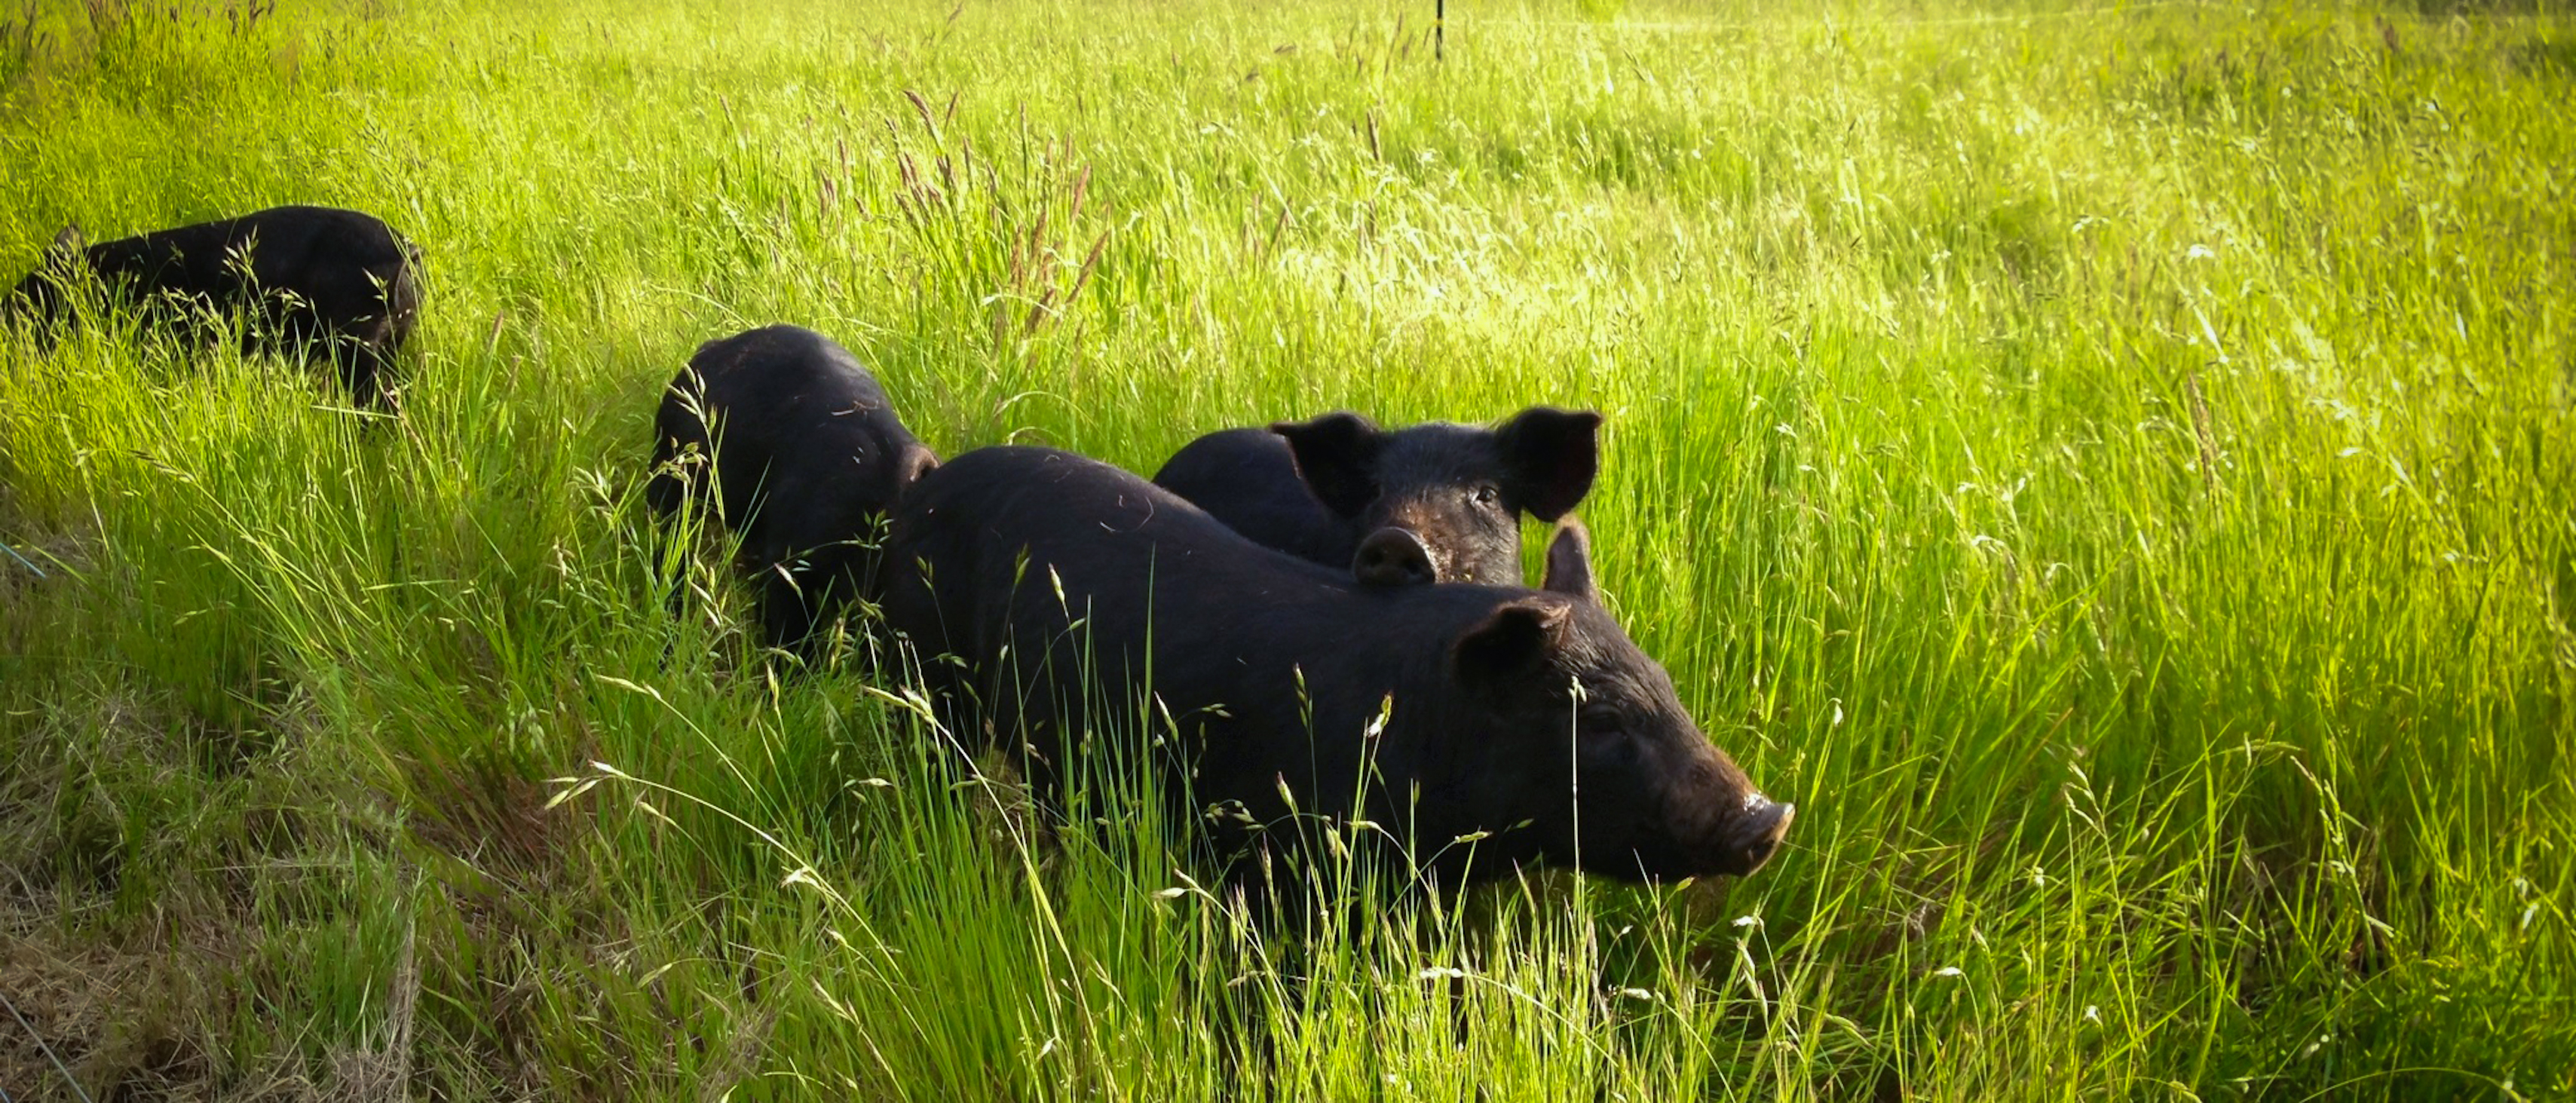 Heritage Hogs on Pasture